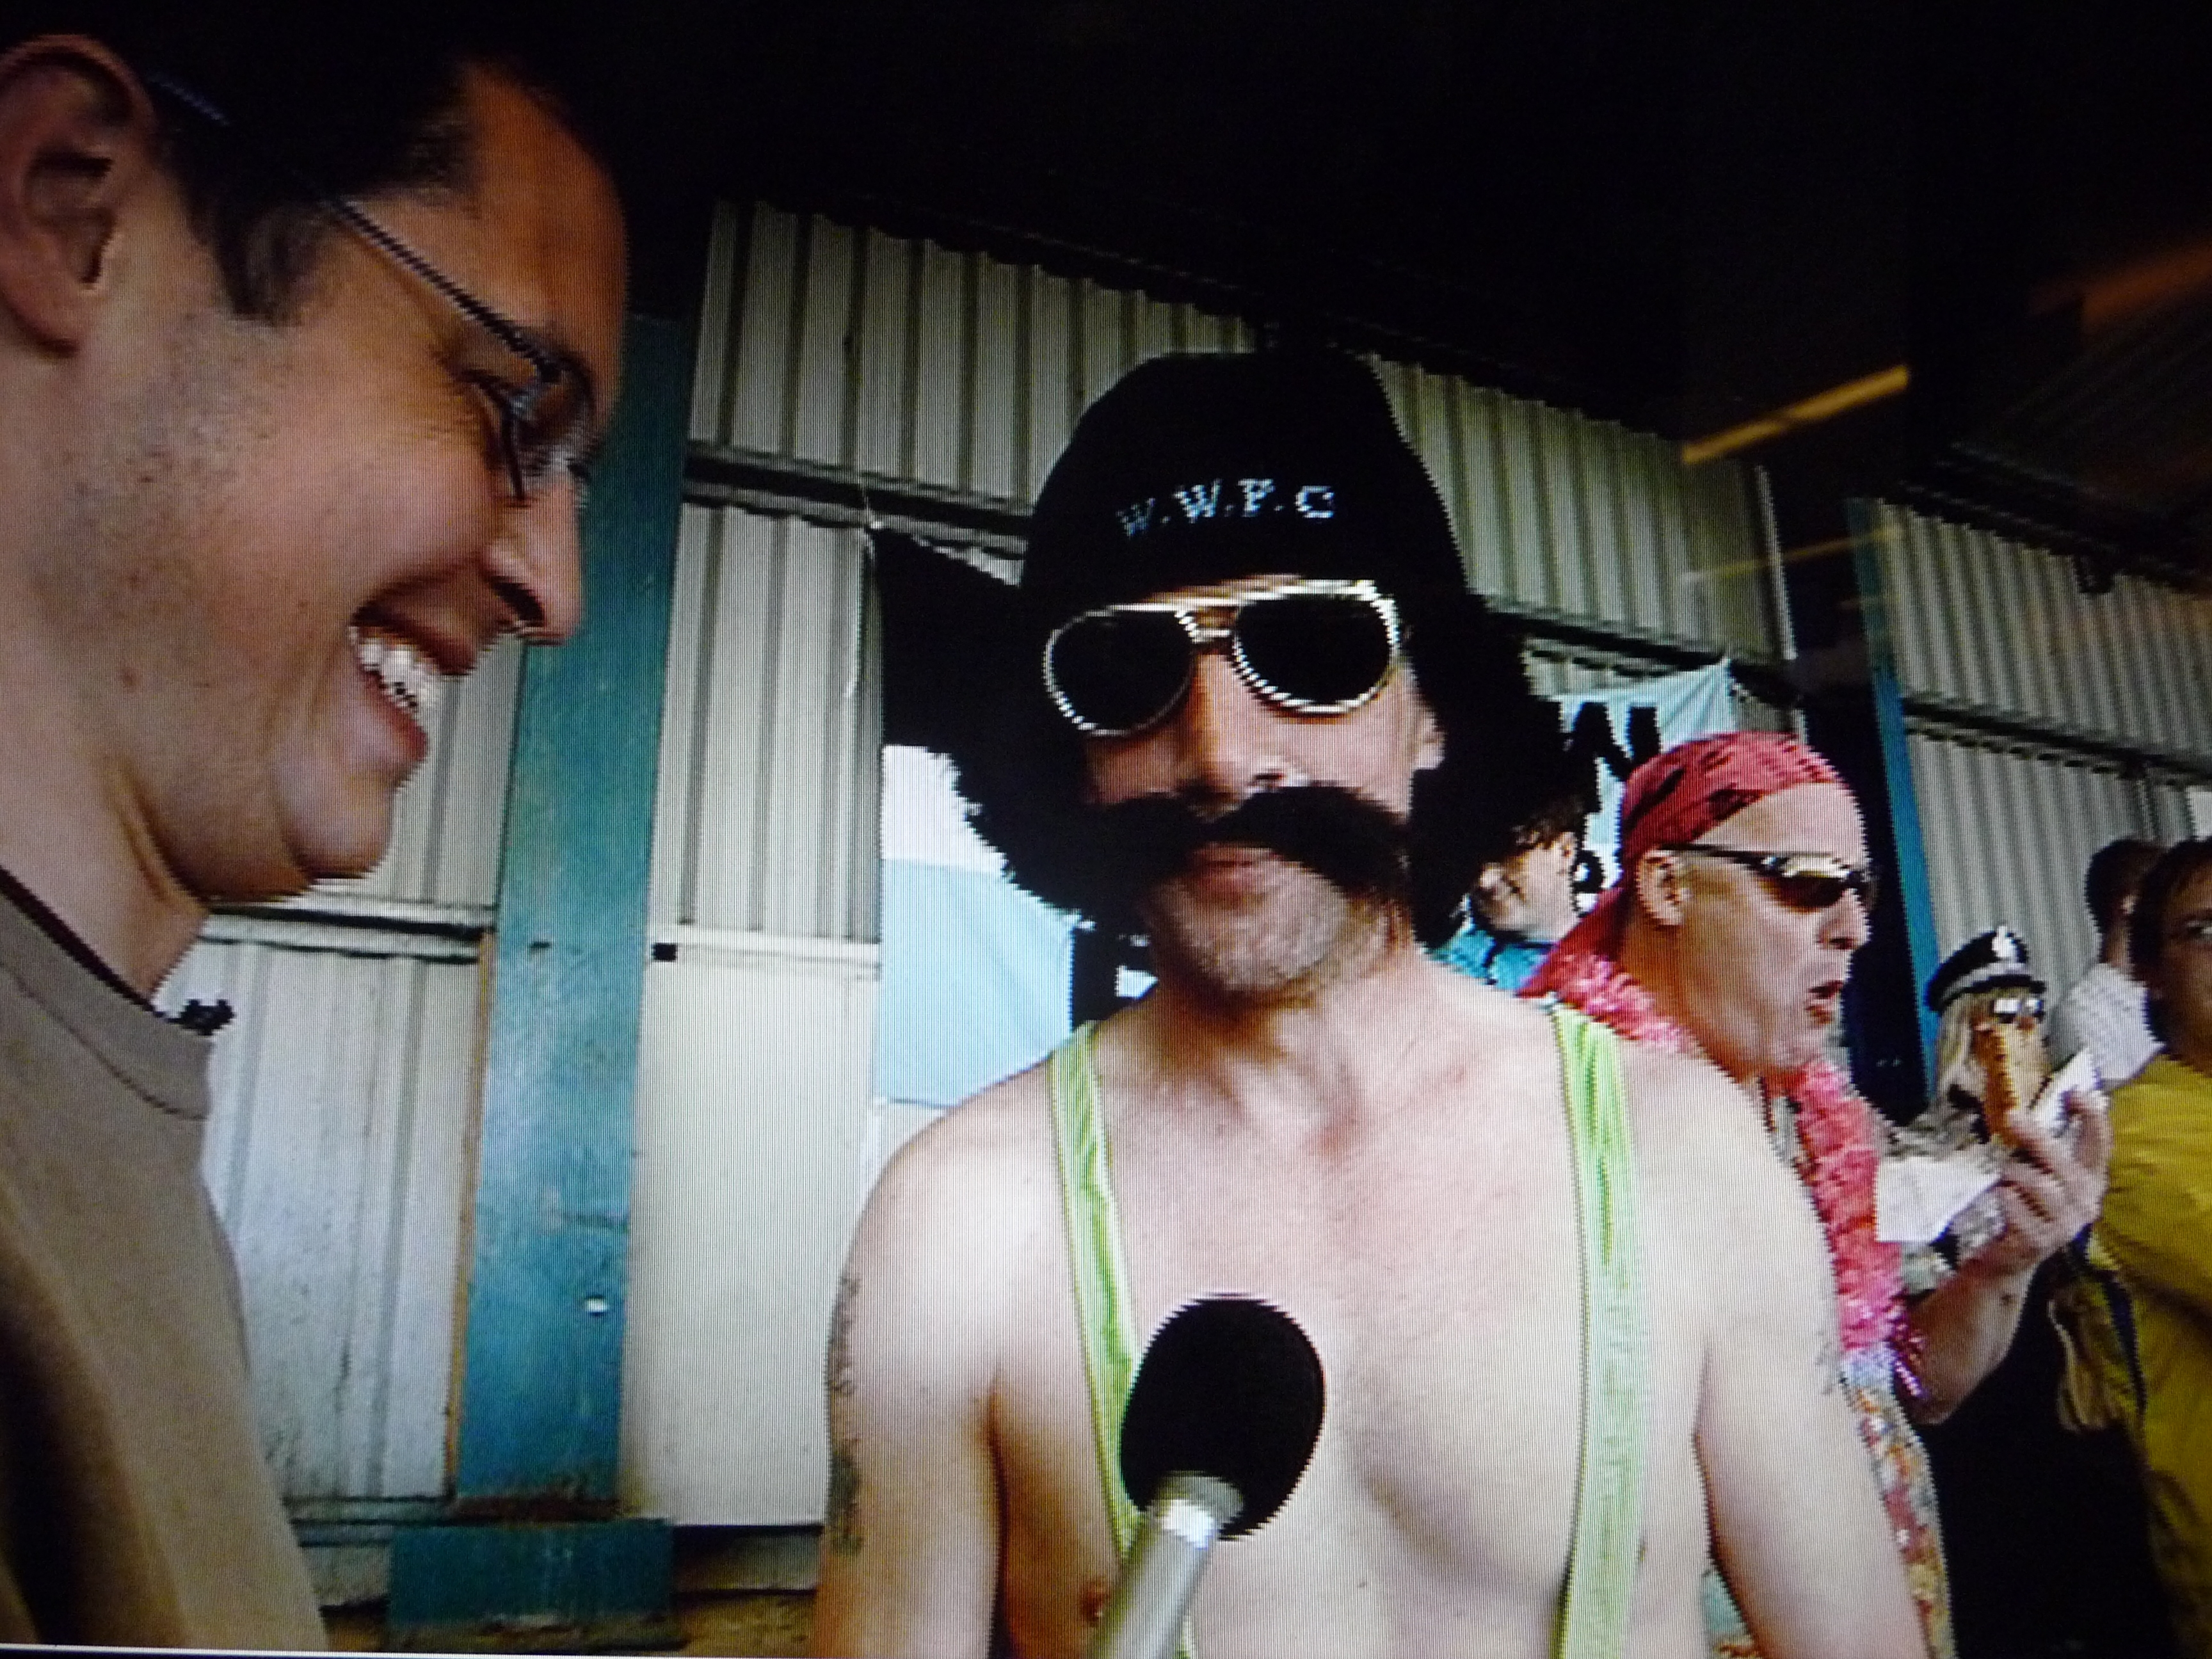 Late Kick Off reporter - Chris Slegg interviewing a Borat Look -a- like